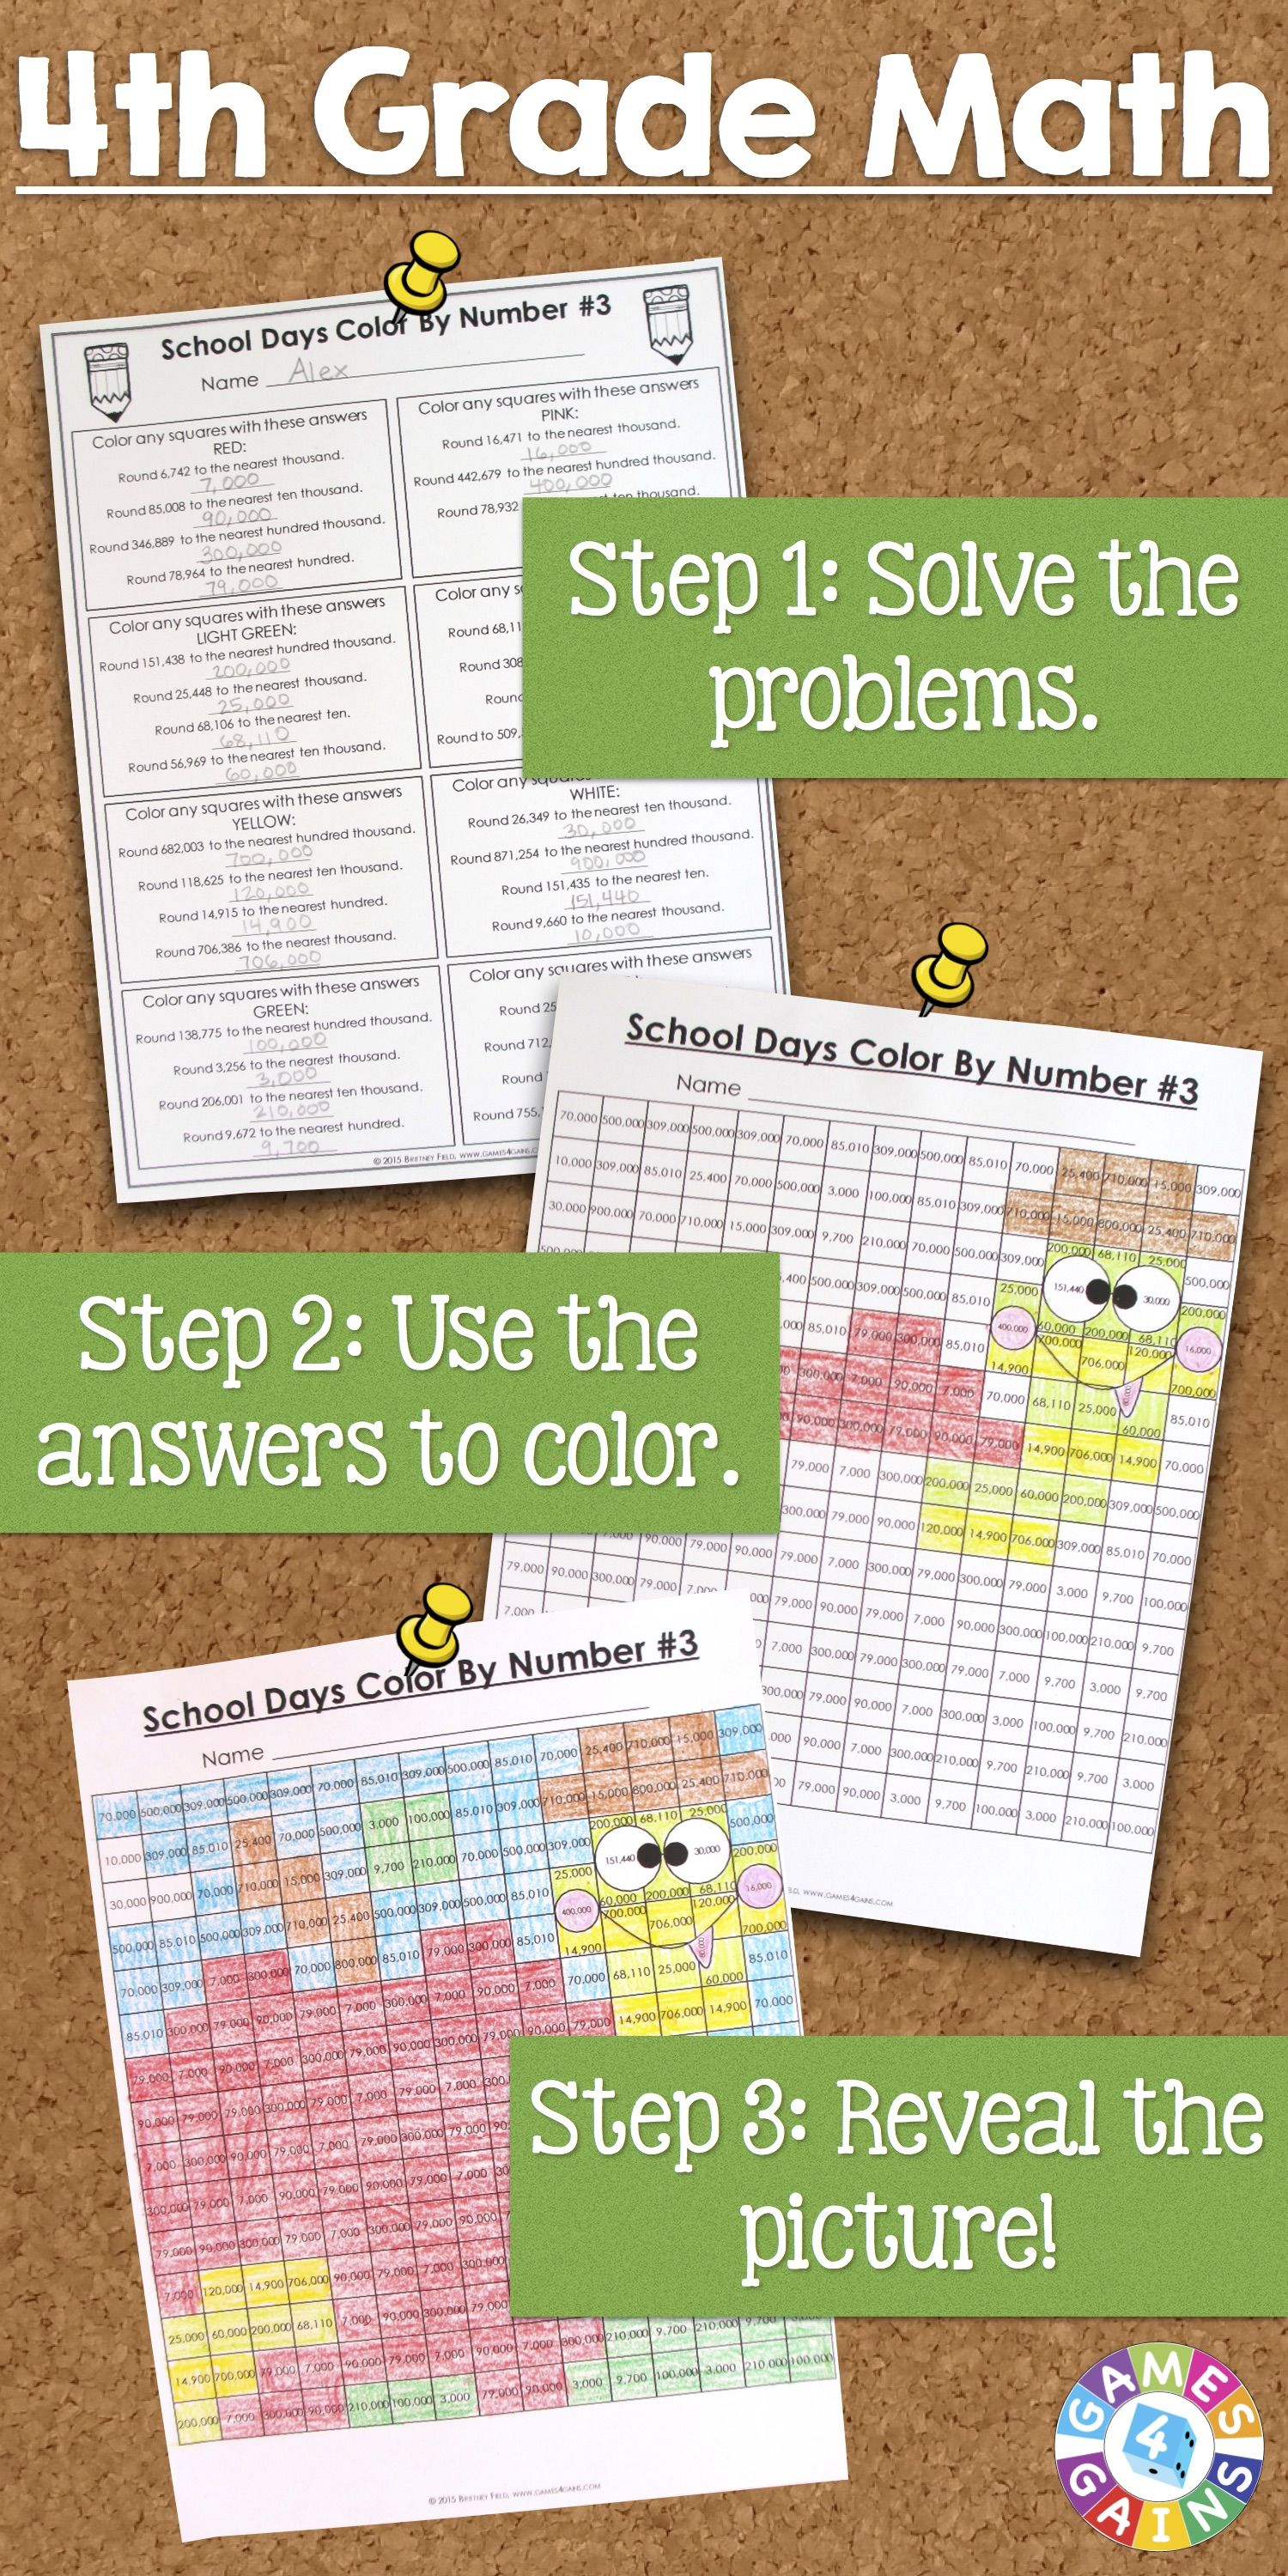 4th Grade Place Value Worksheets (5th Grade Back to School Math Review)   4th  grade math [ 3000 x 1500 Pixel ]